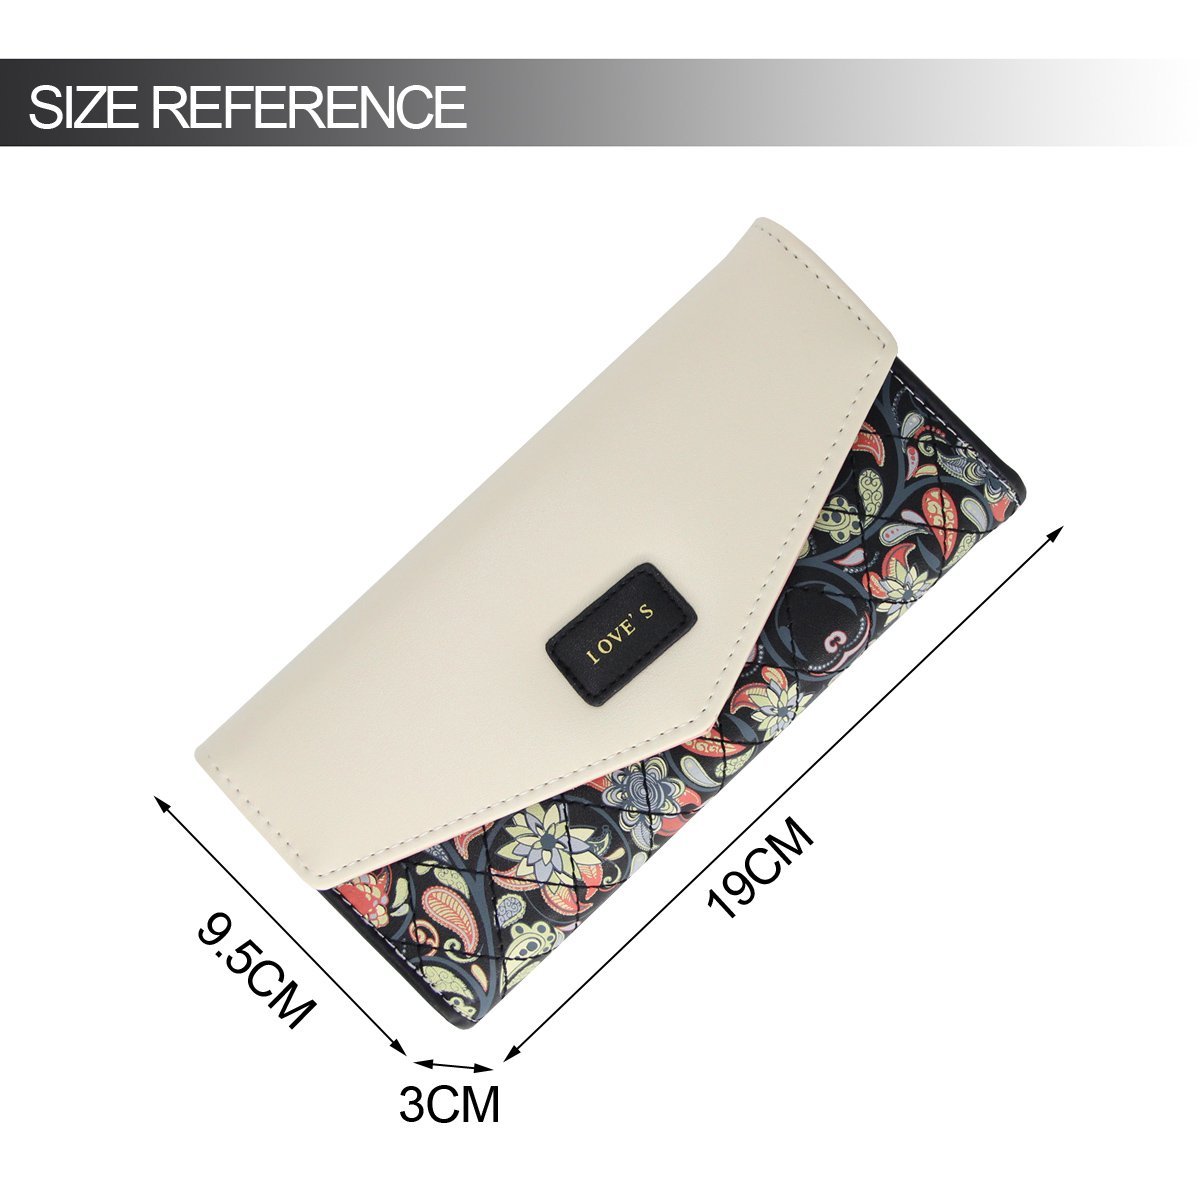 Womens Leather Wallet Purse Handbag Floral Money Clips Credit Card Case Holder by Uopen Endy (Image #2)